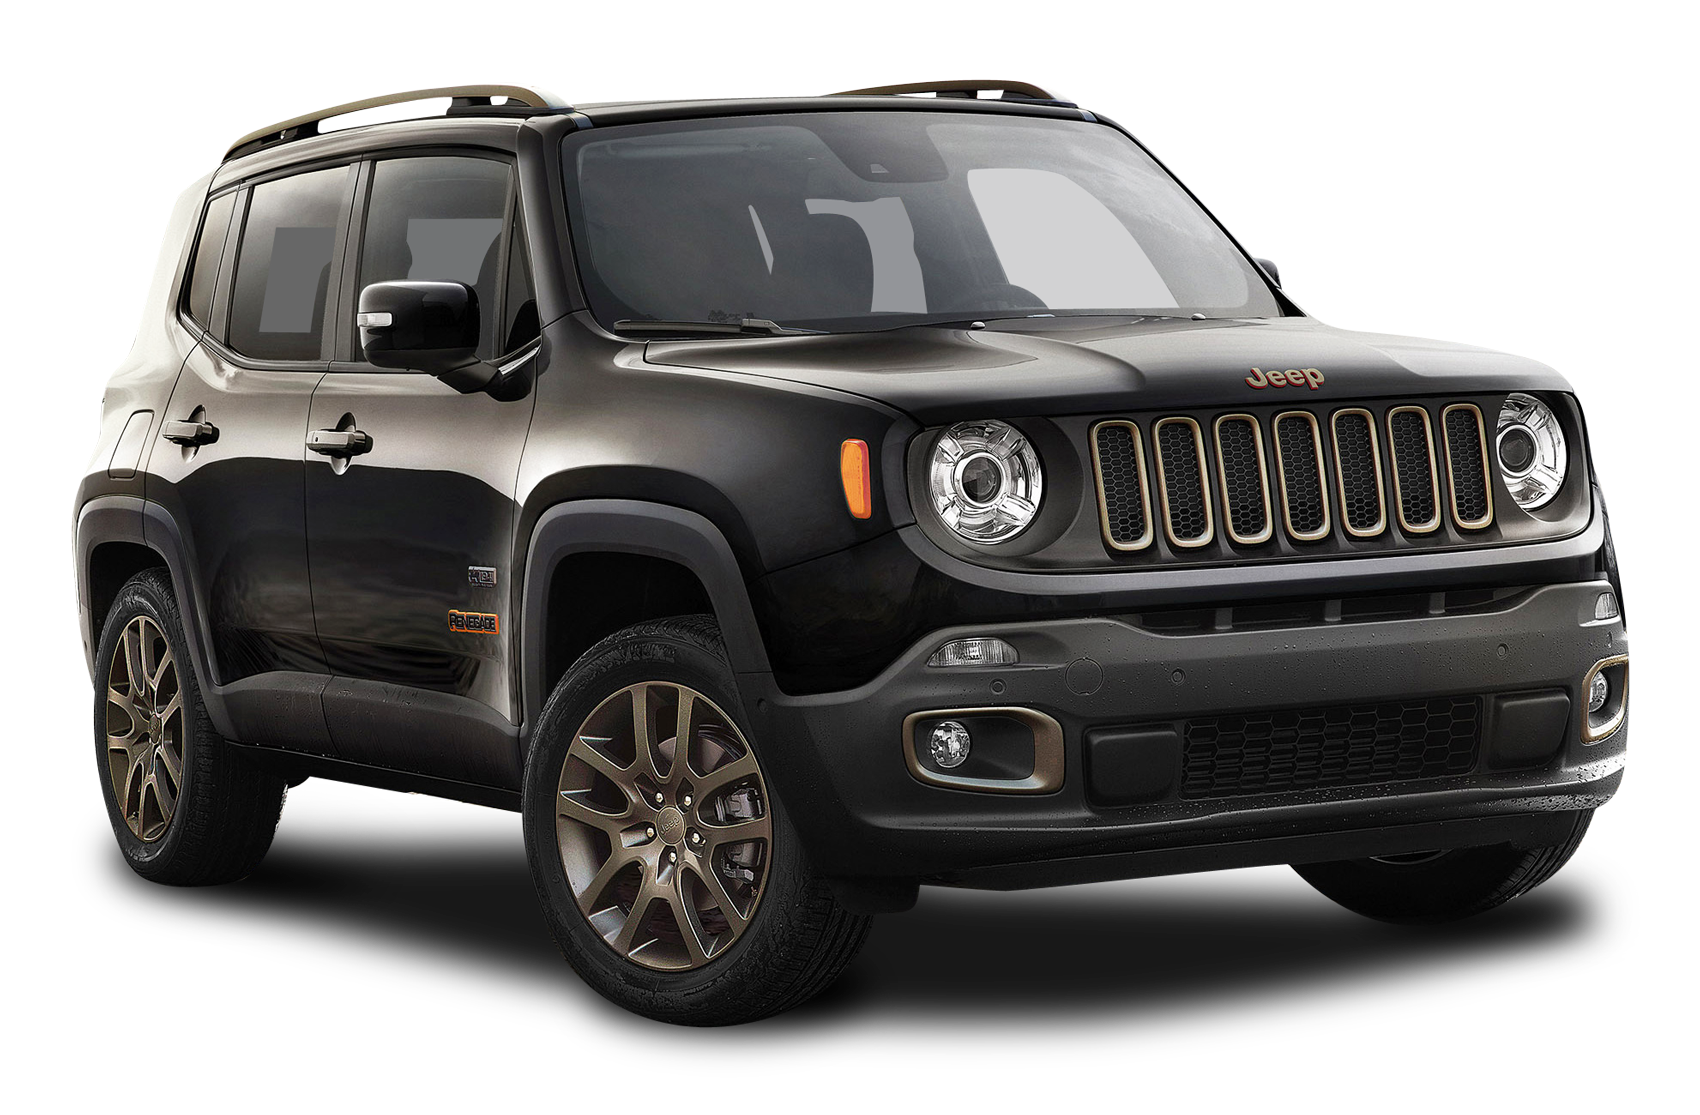 Wheel Renegade Jeep Automotive Exterior Free HQ Image PNG Image